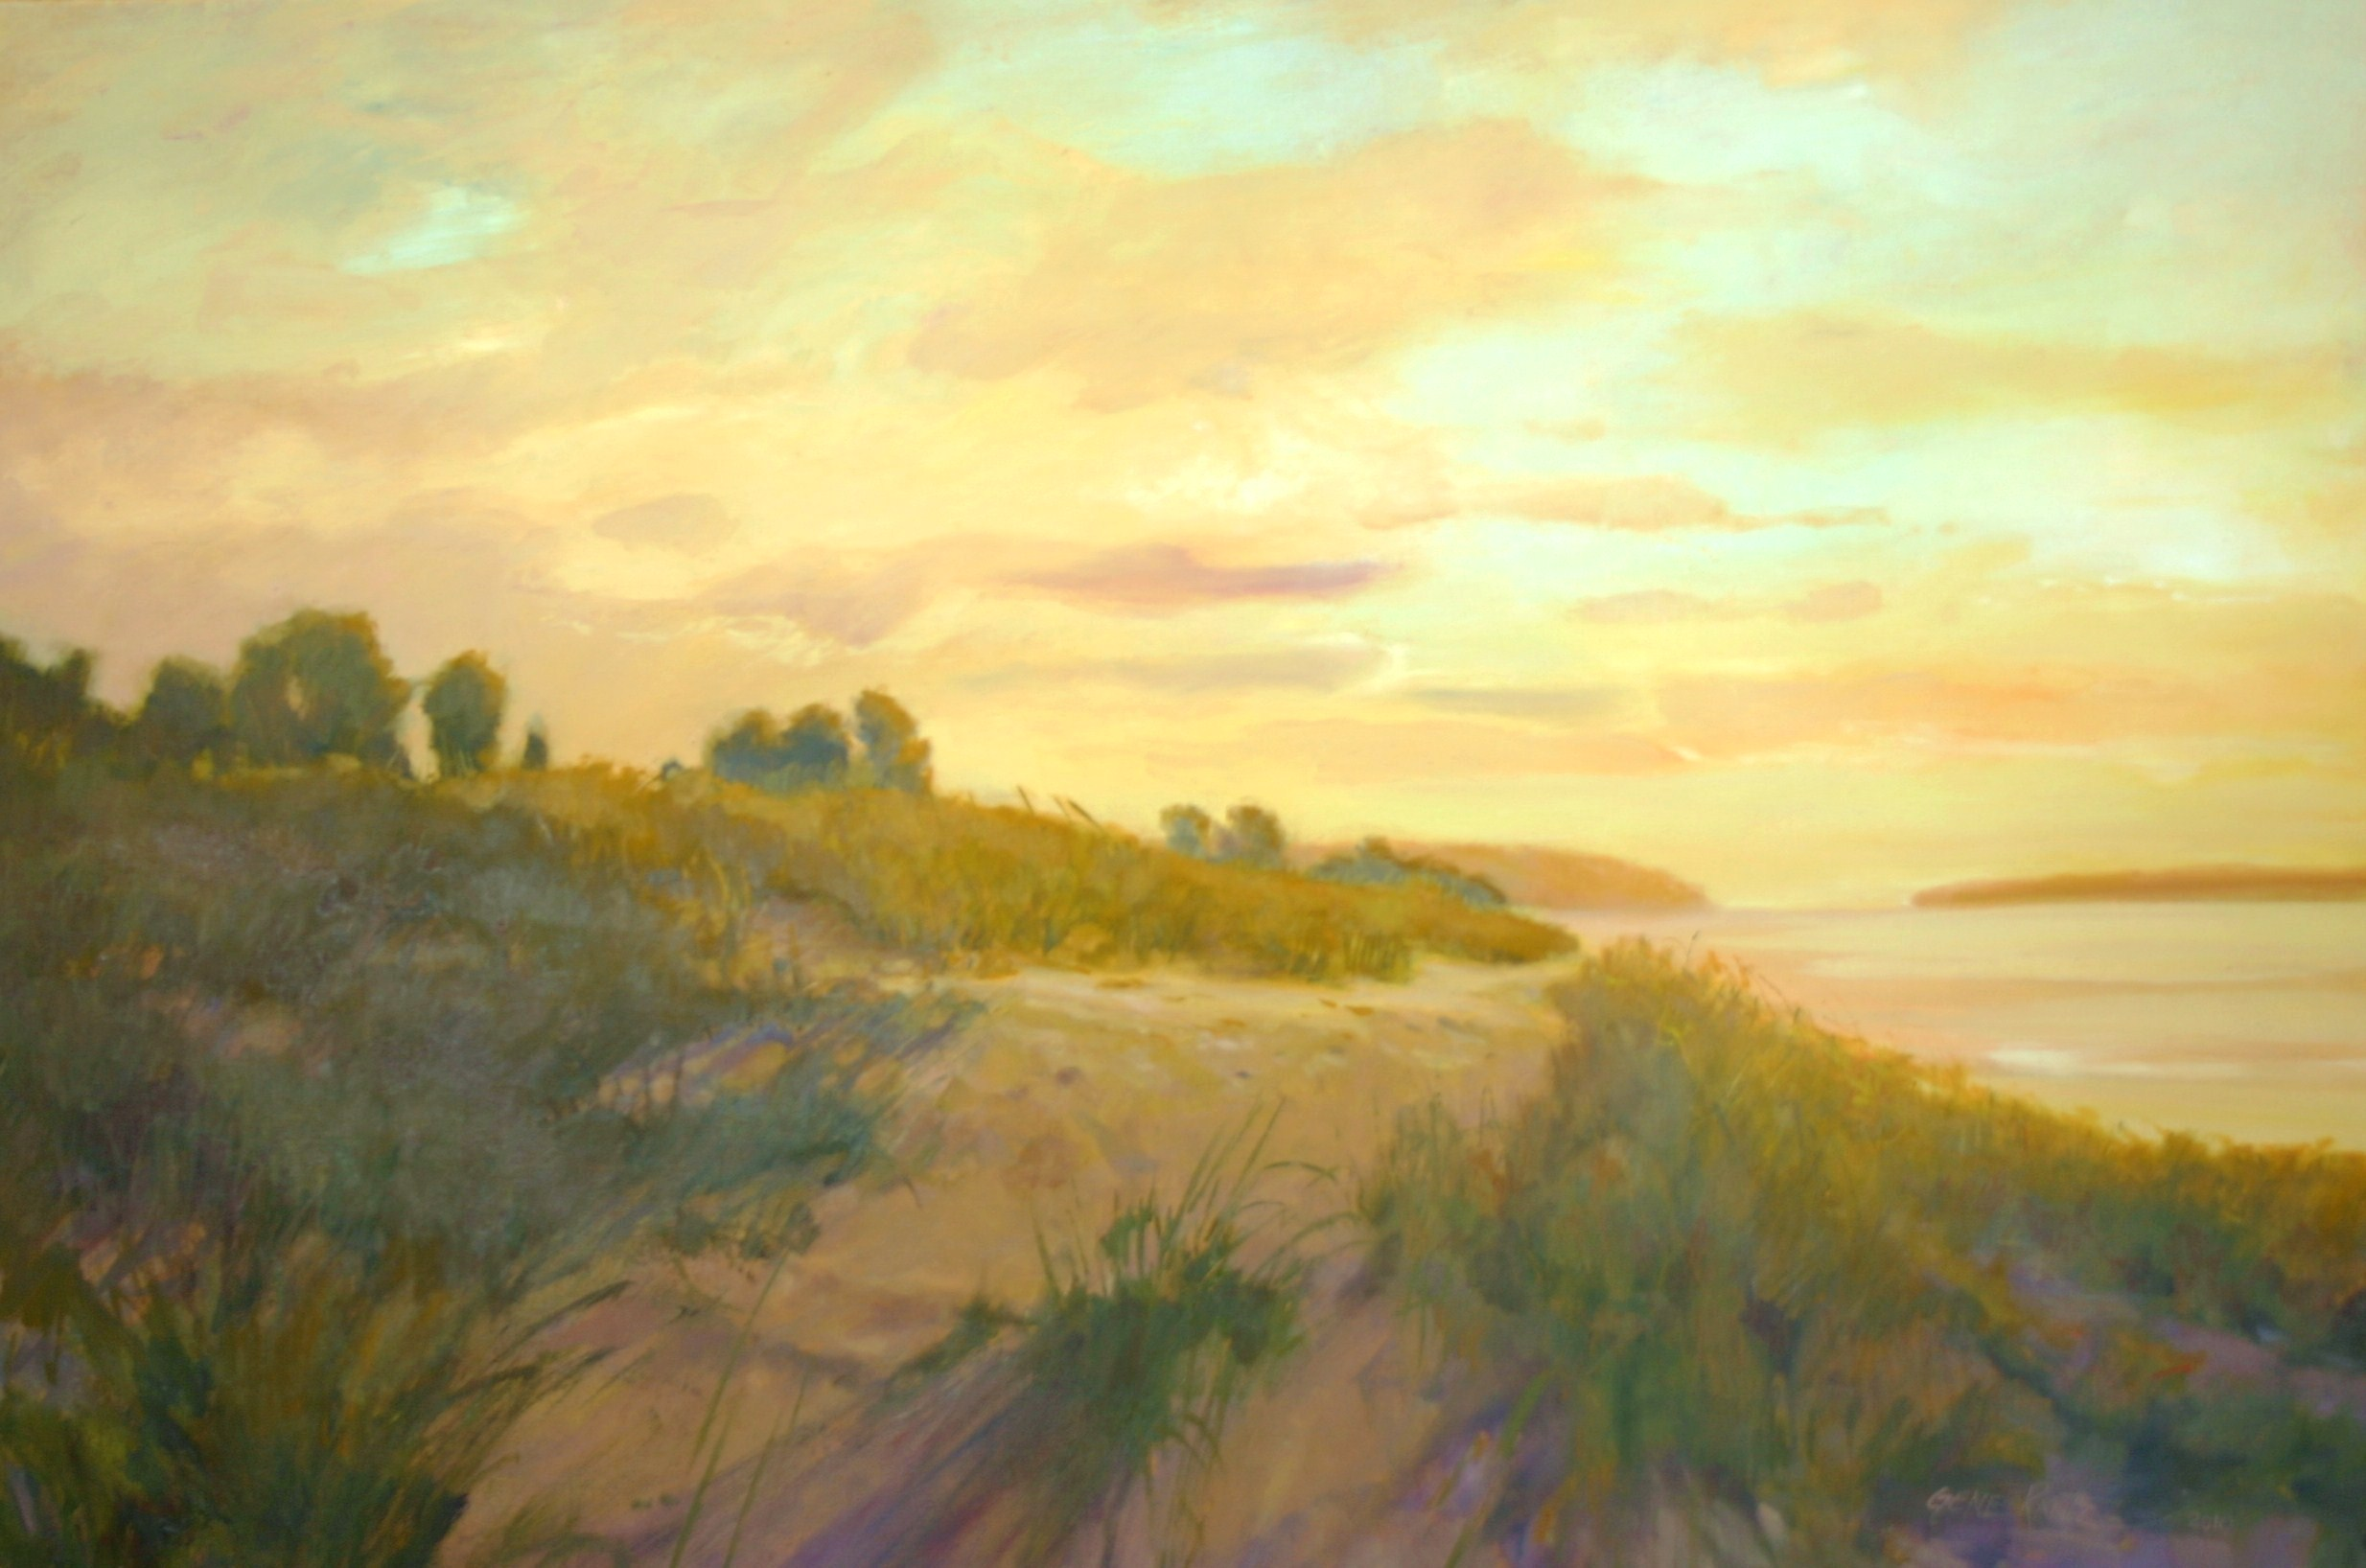 dune vista 24 x 36 oil on canvas